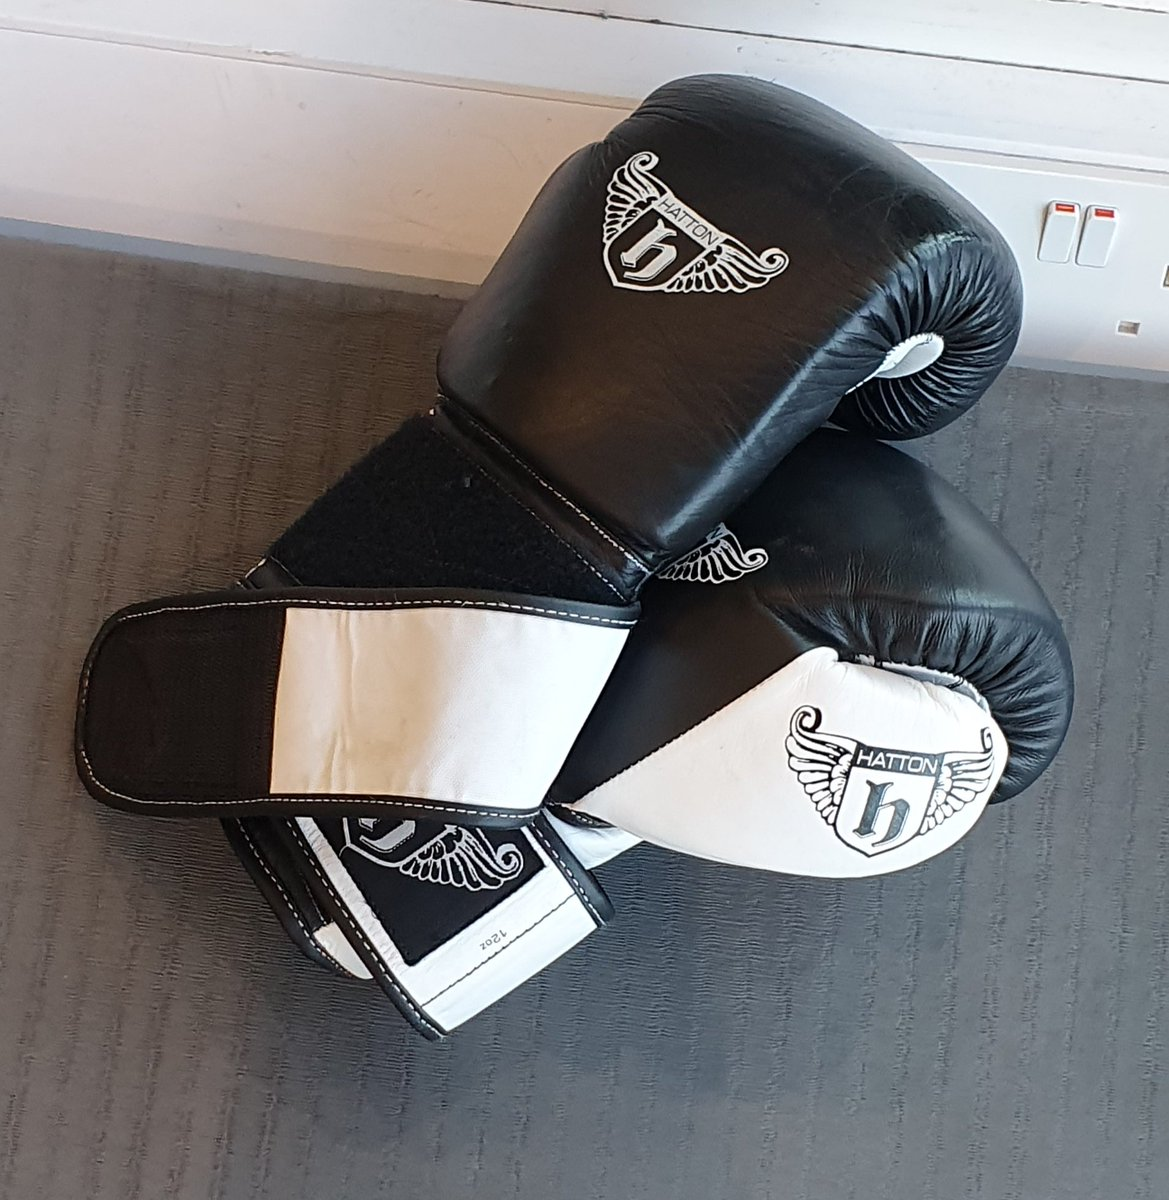 After a tw*t of a week it was good to smash the sh*t out of a punch bag down the gym for a bit.  Very therapeutic.    #fitnesswear #FitnessDay #fitnessaddict #FitnessMotivation #gymfit #gymwear #gymmotivation #gymlife #bodybuilding<br>http://pic.twitter.com/fMvyZO9tkb